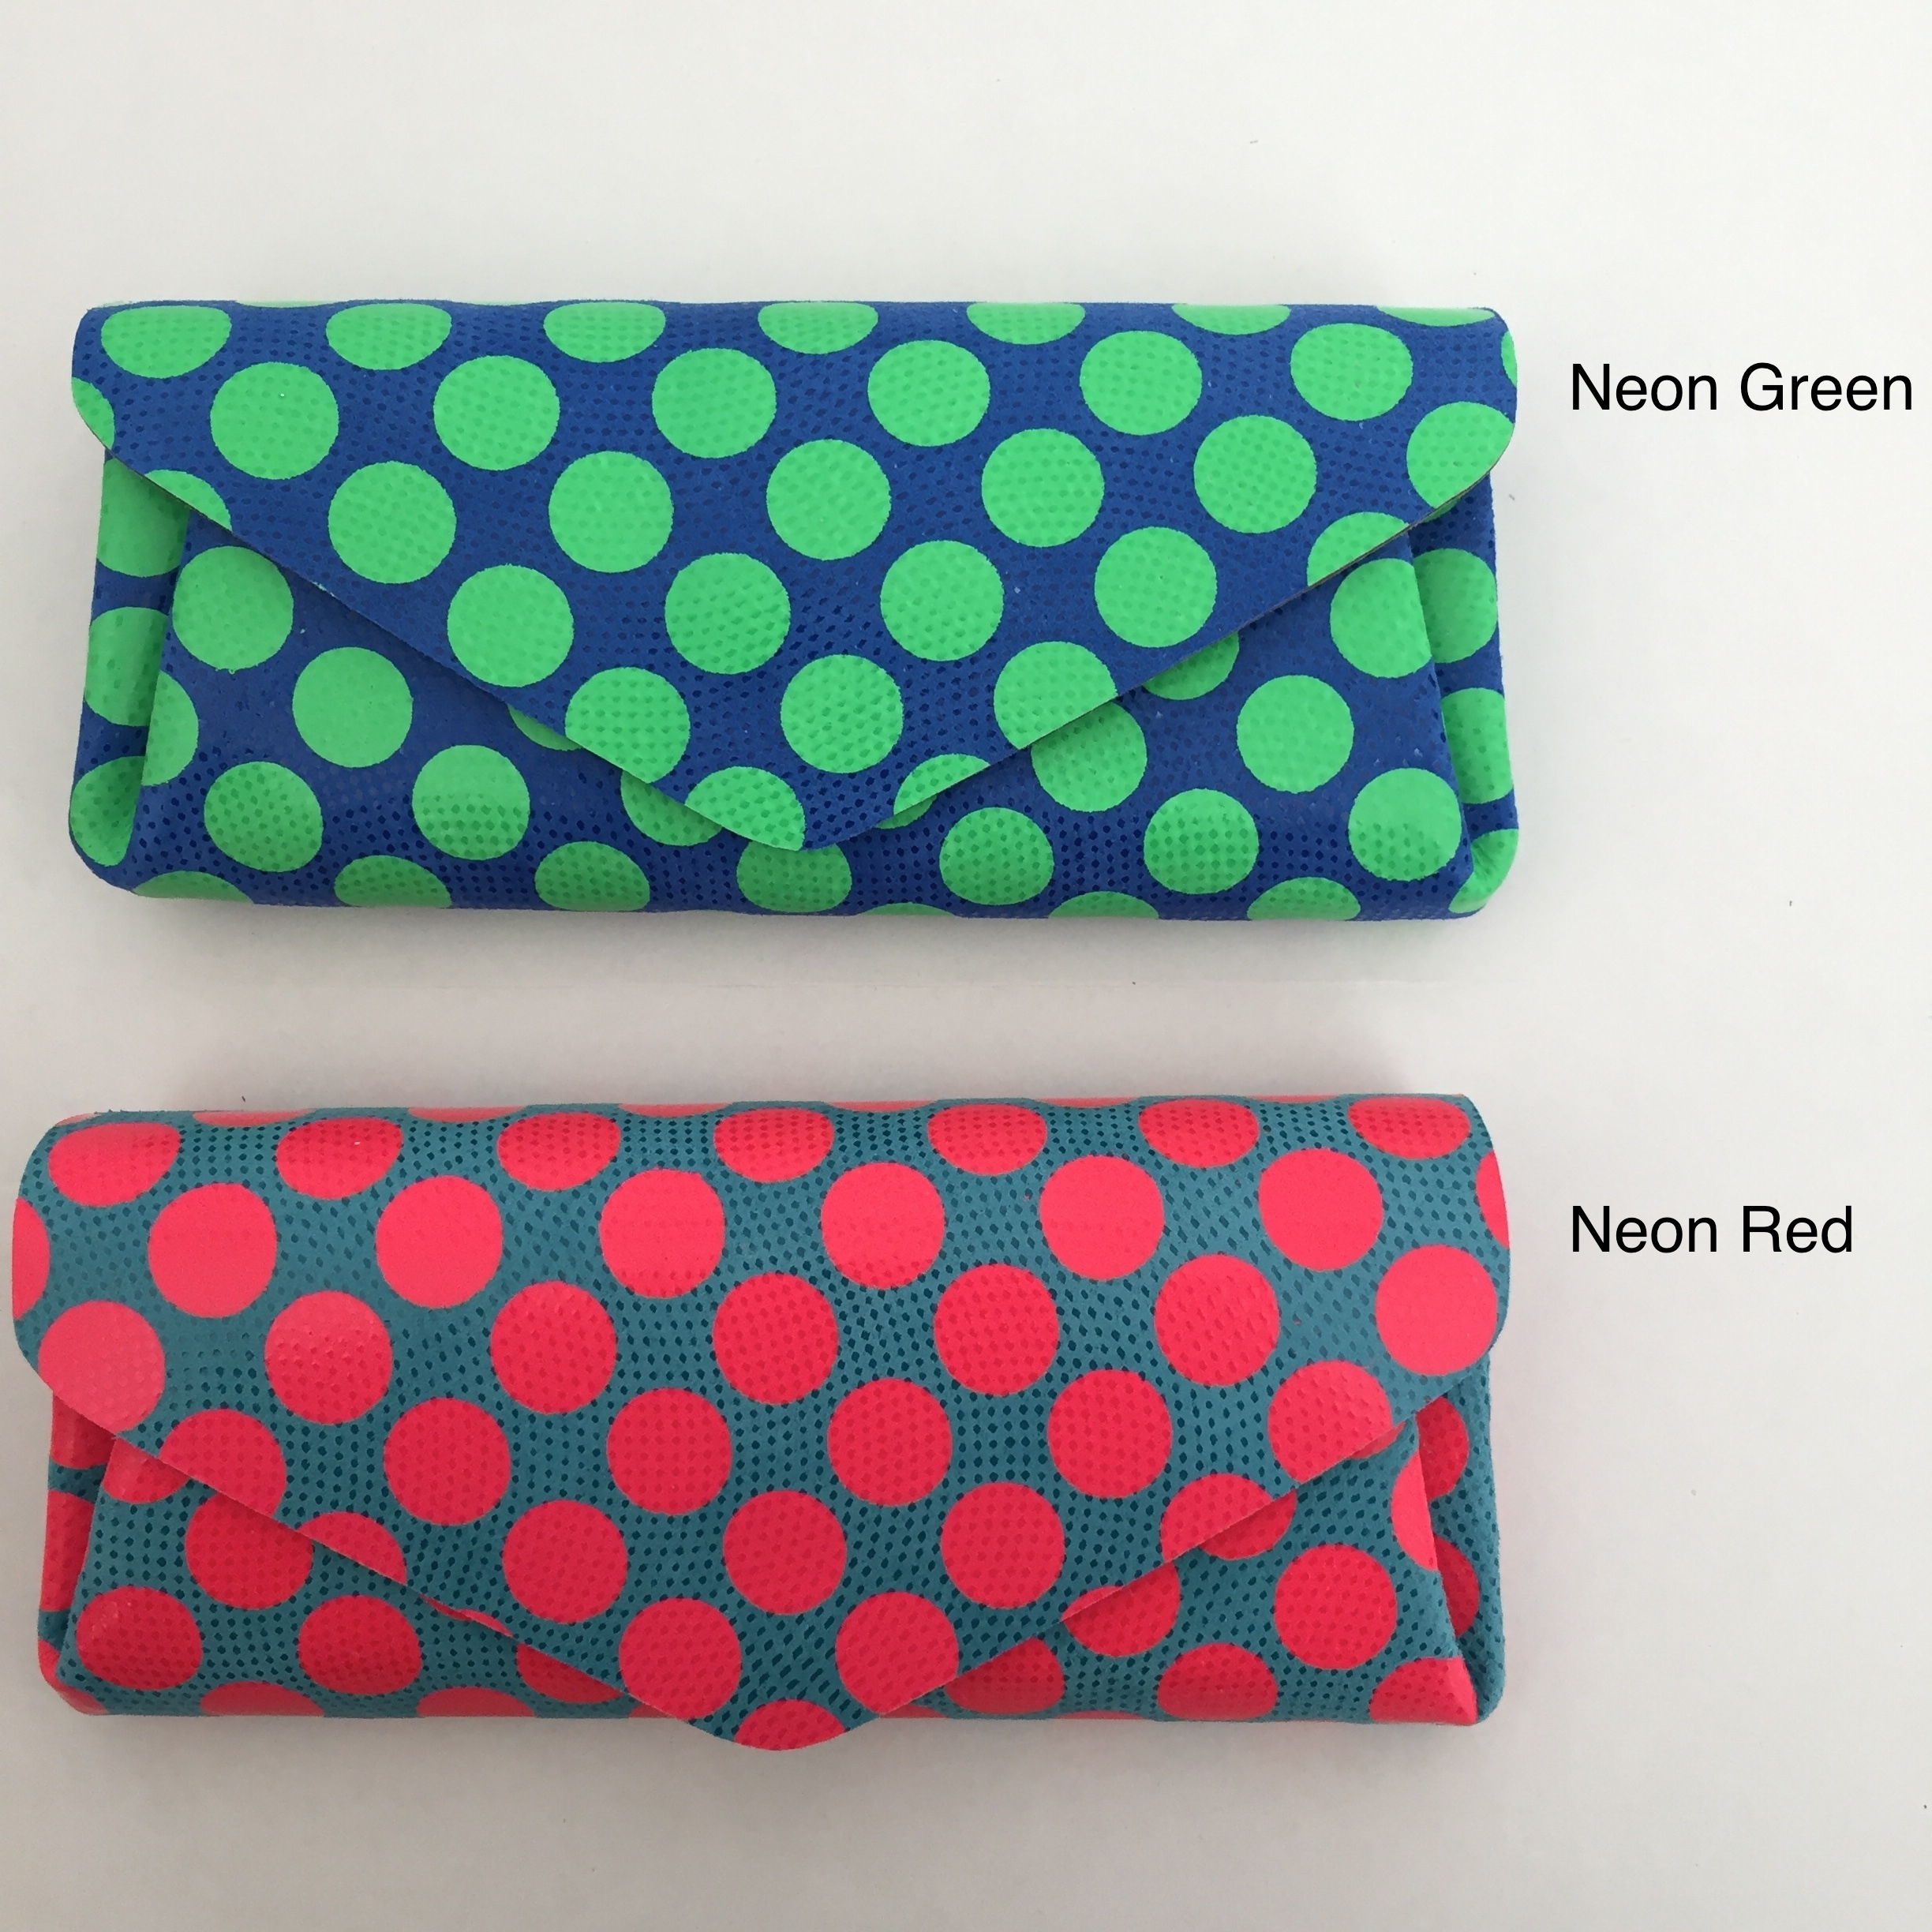 【carmine】Dot Leather Long Wallet Neon Color